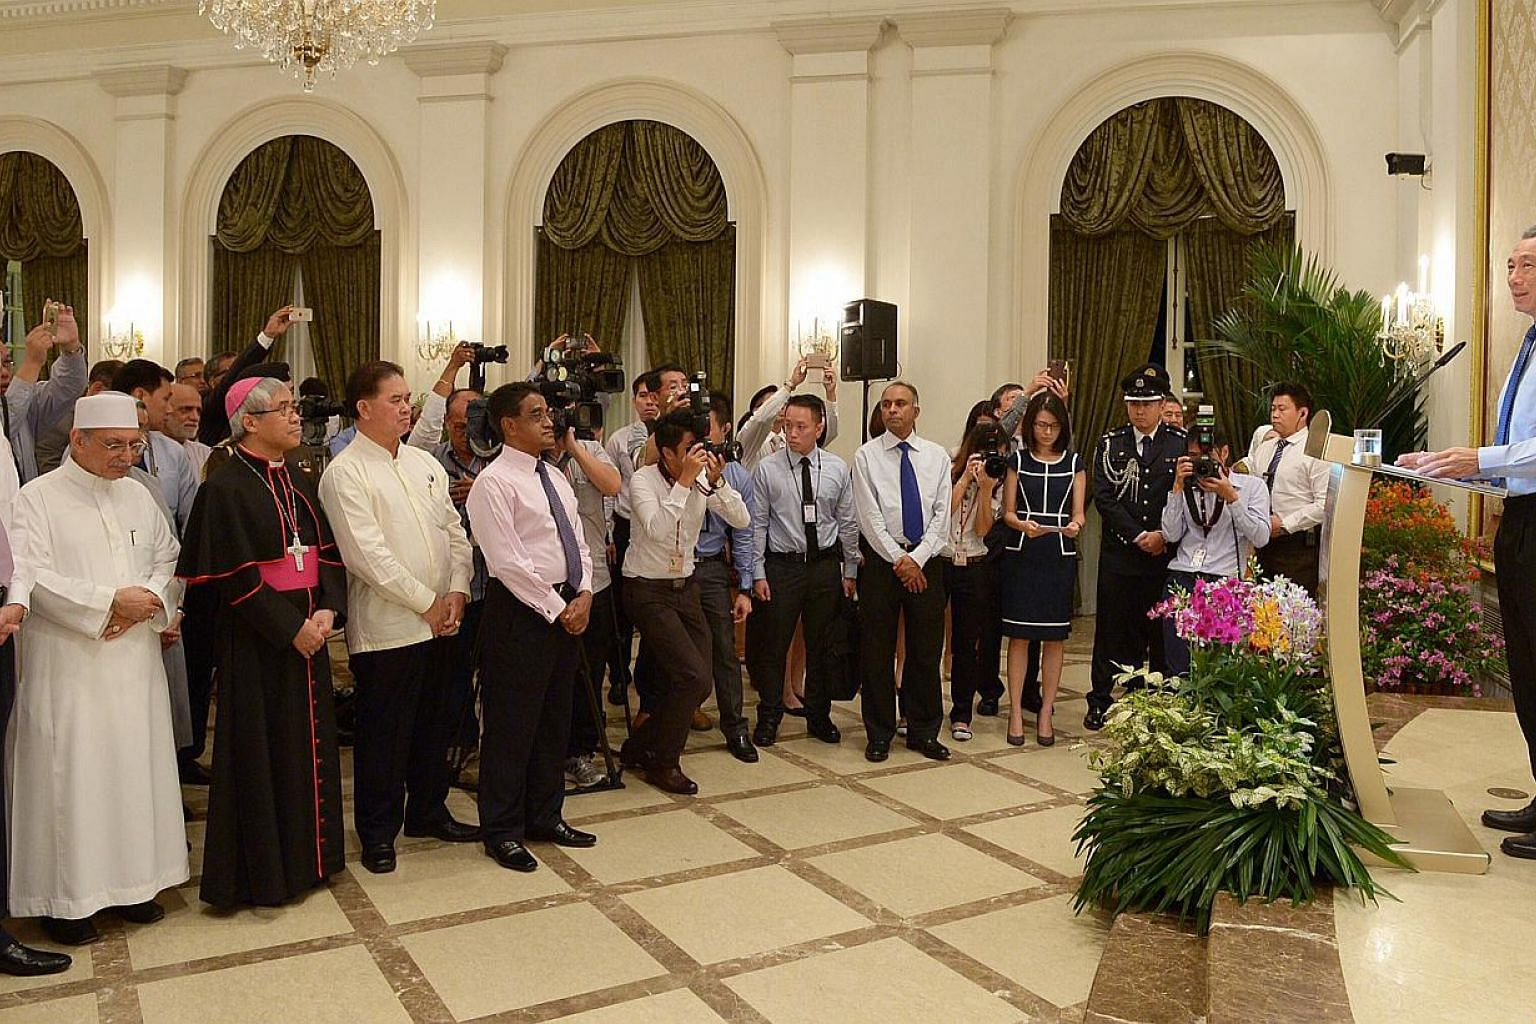 Prime Minister Lee Hsien Loong at the 66th anniversary dinner of the Inter-Religious Organisation (IRO). A new museum will be set up here to encourage religious tolerance and harmony, Mr Lee said on Tuesday. -- ST PHOTO: DESMOND WEE